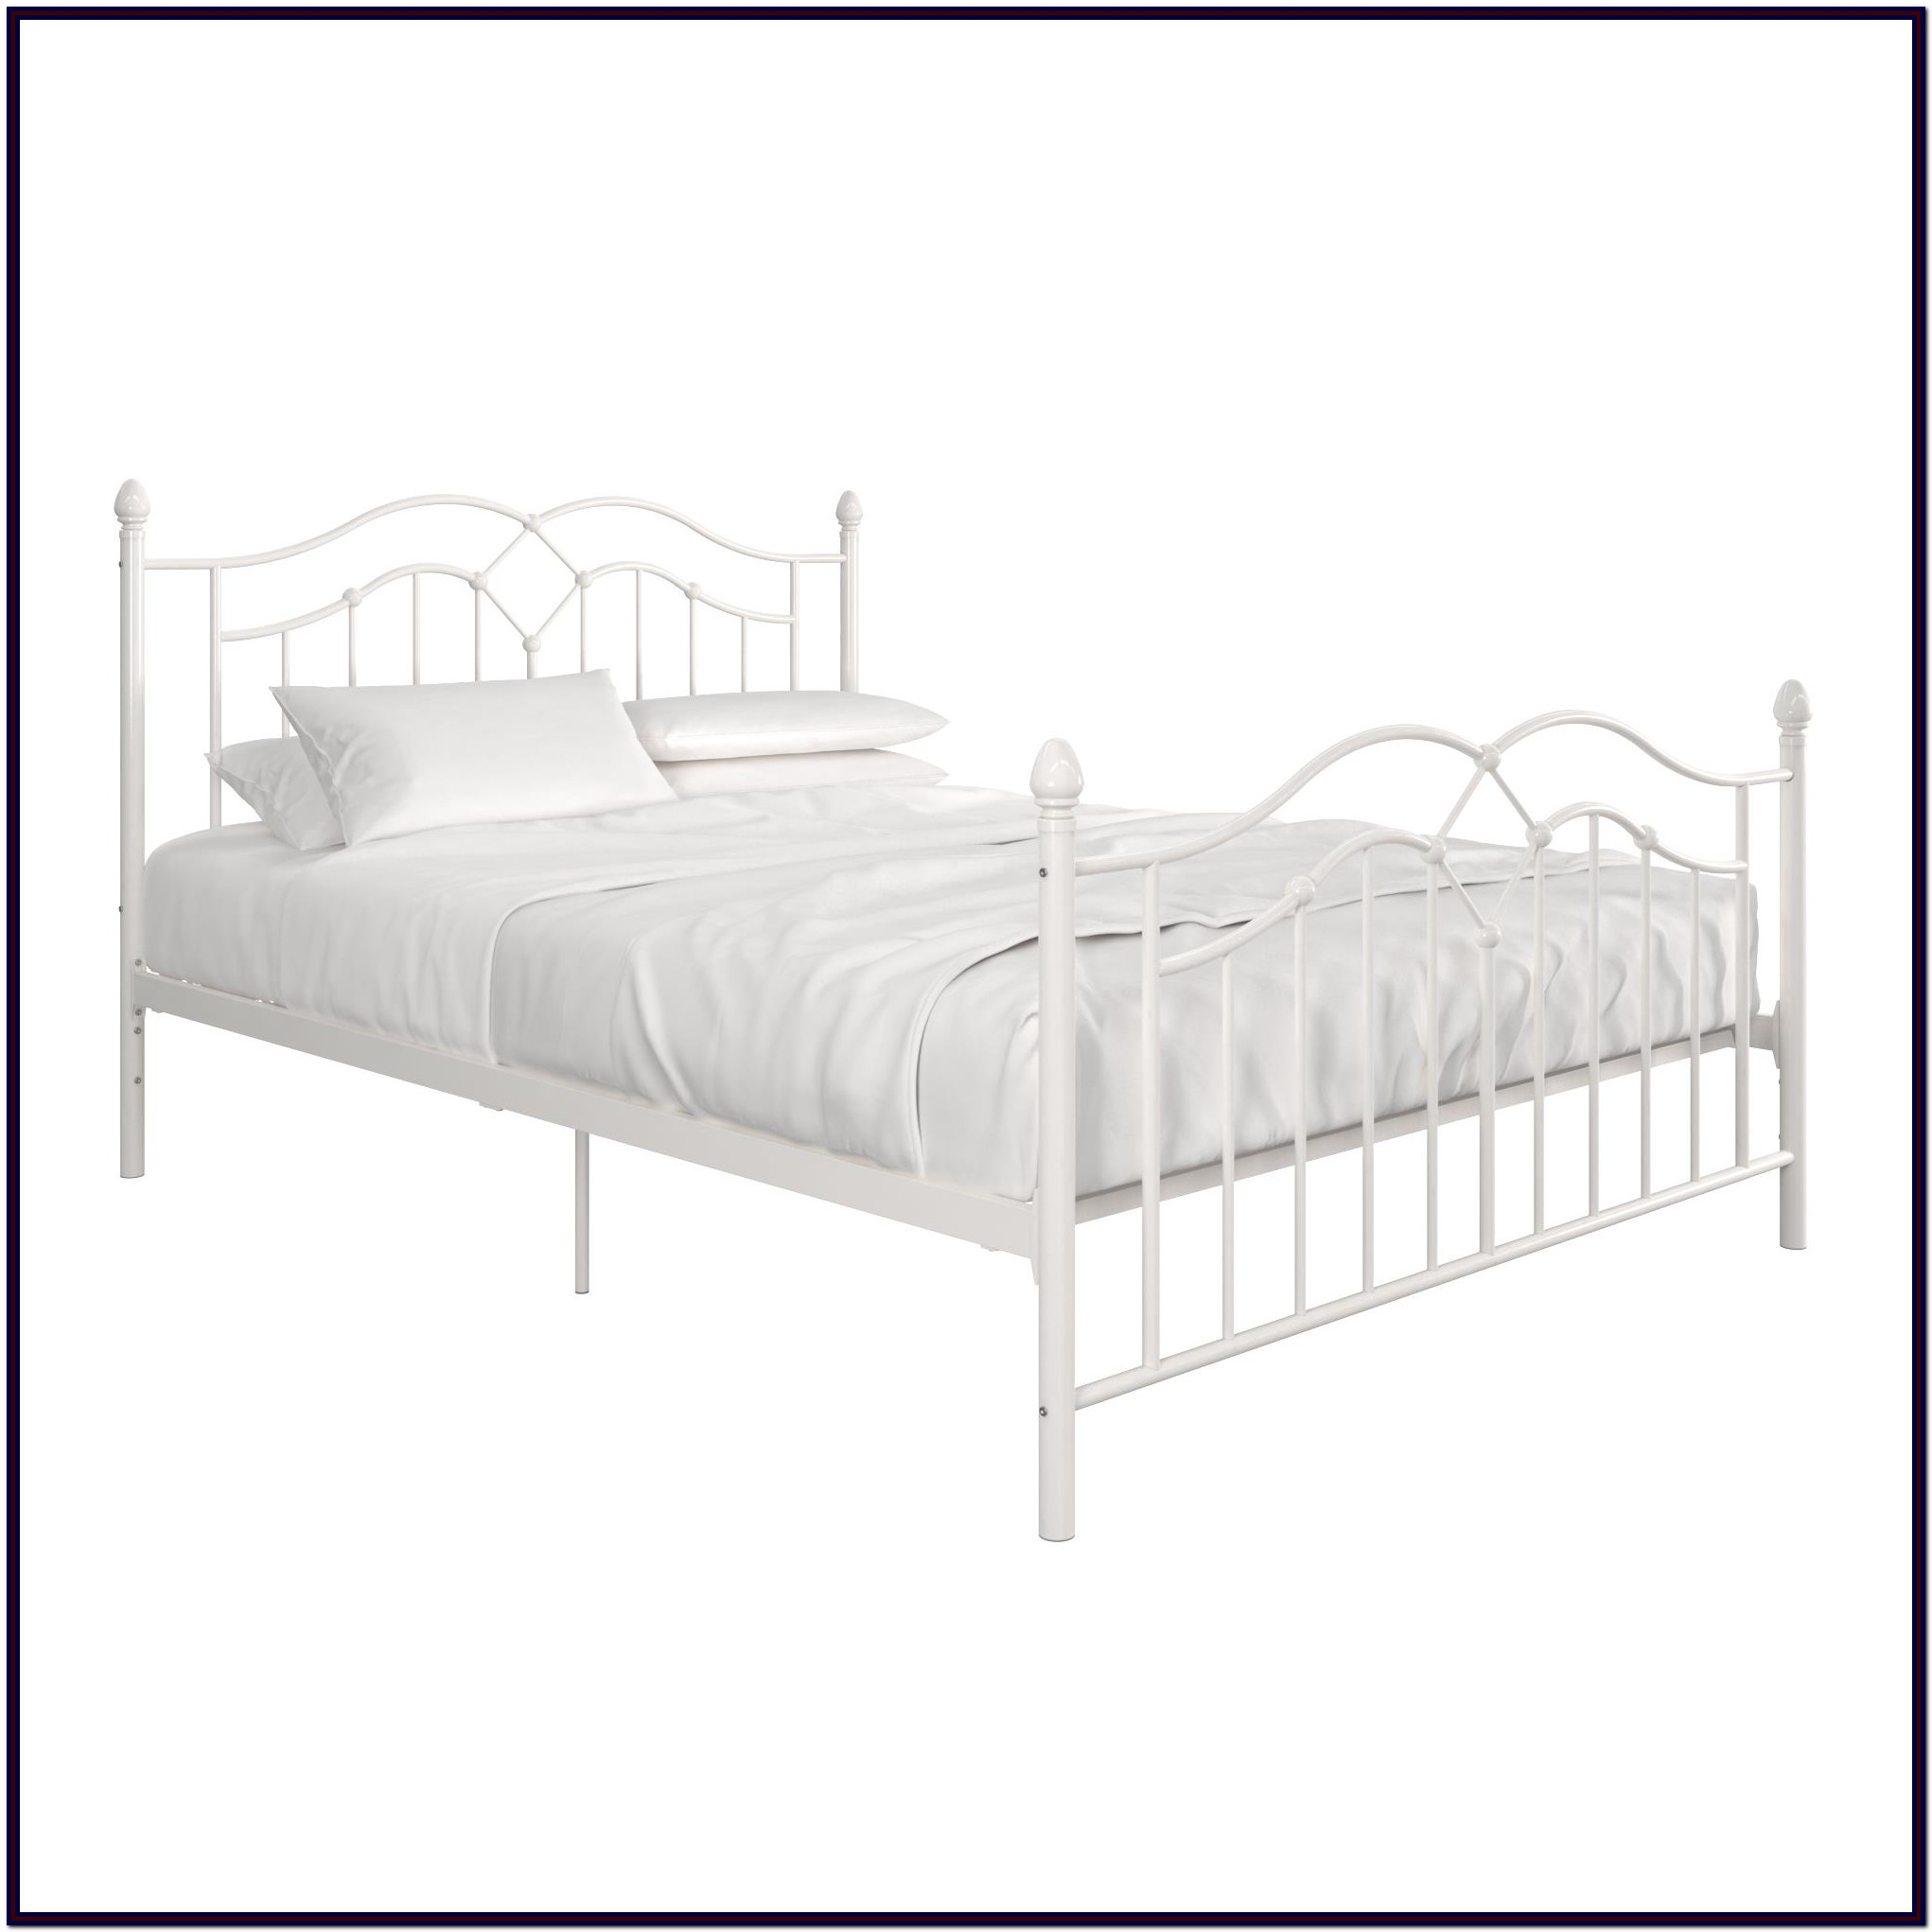 Metal Bed Frame Queen Instructions